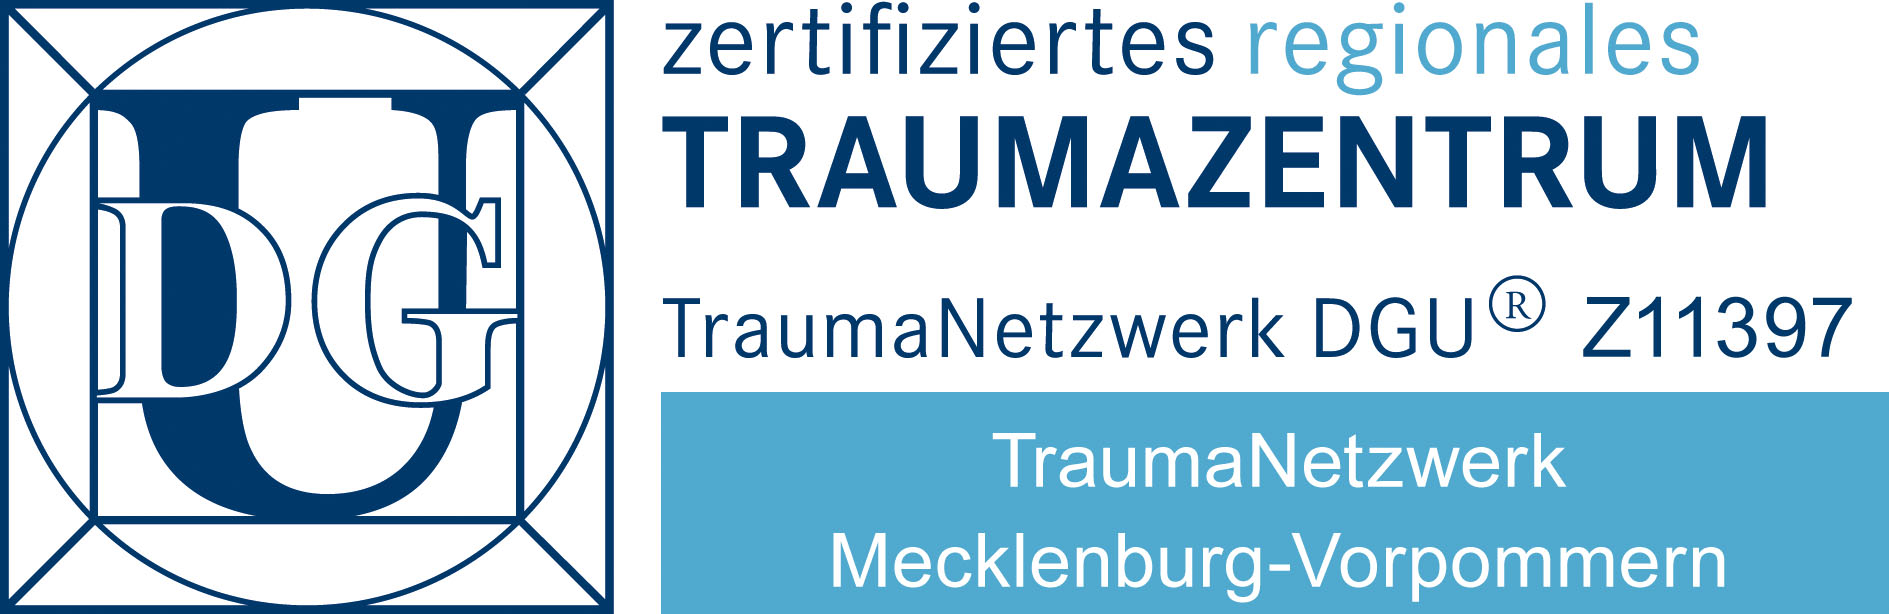 03 Traumazentrum Groß